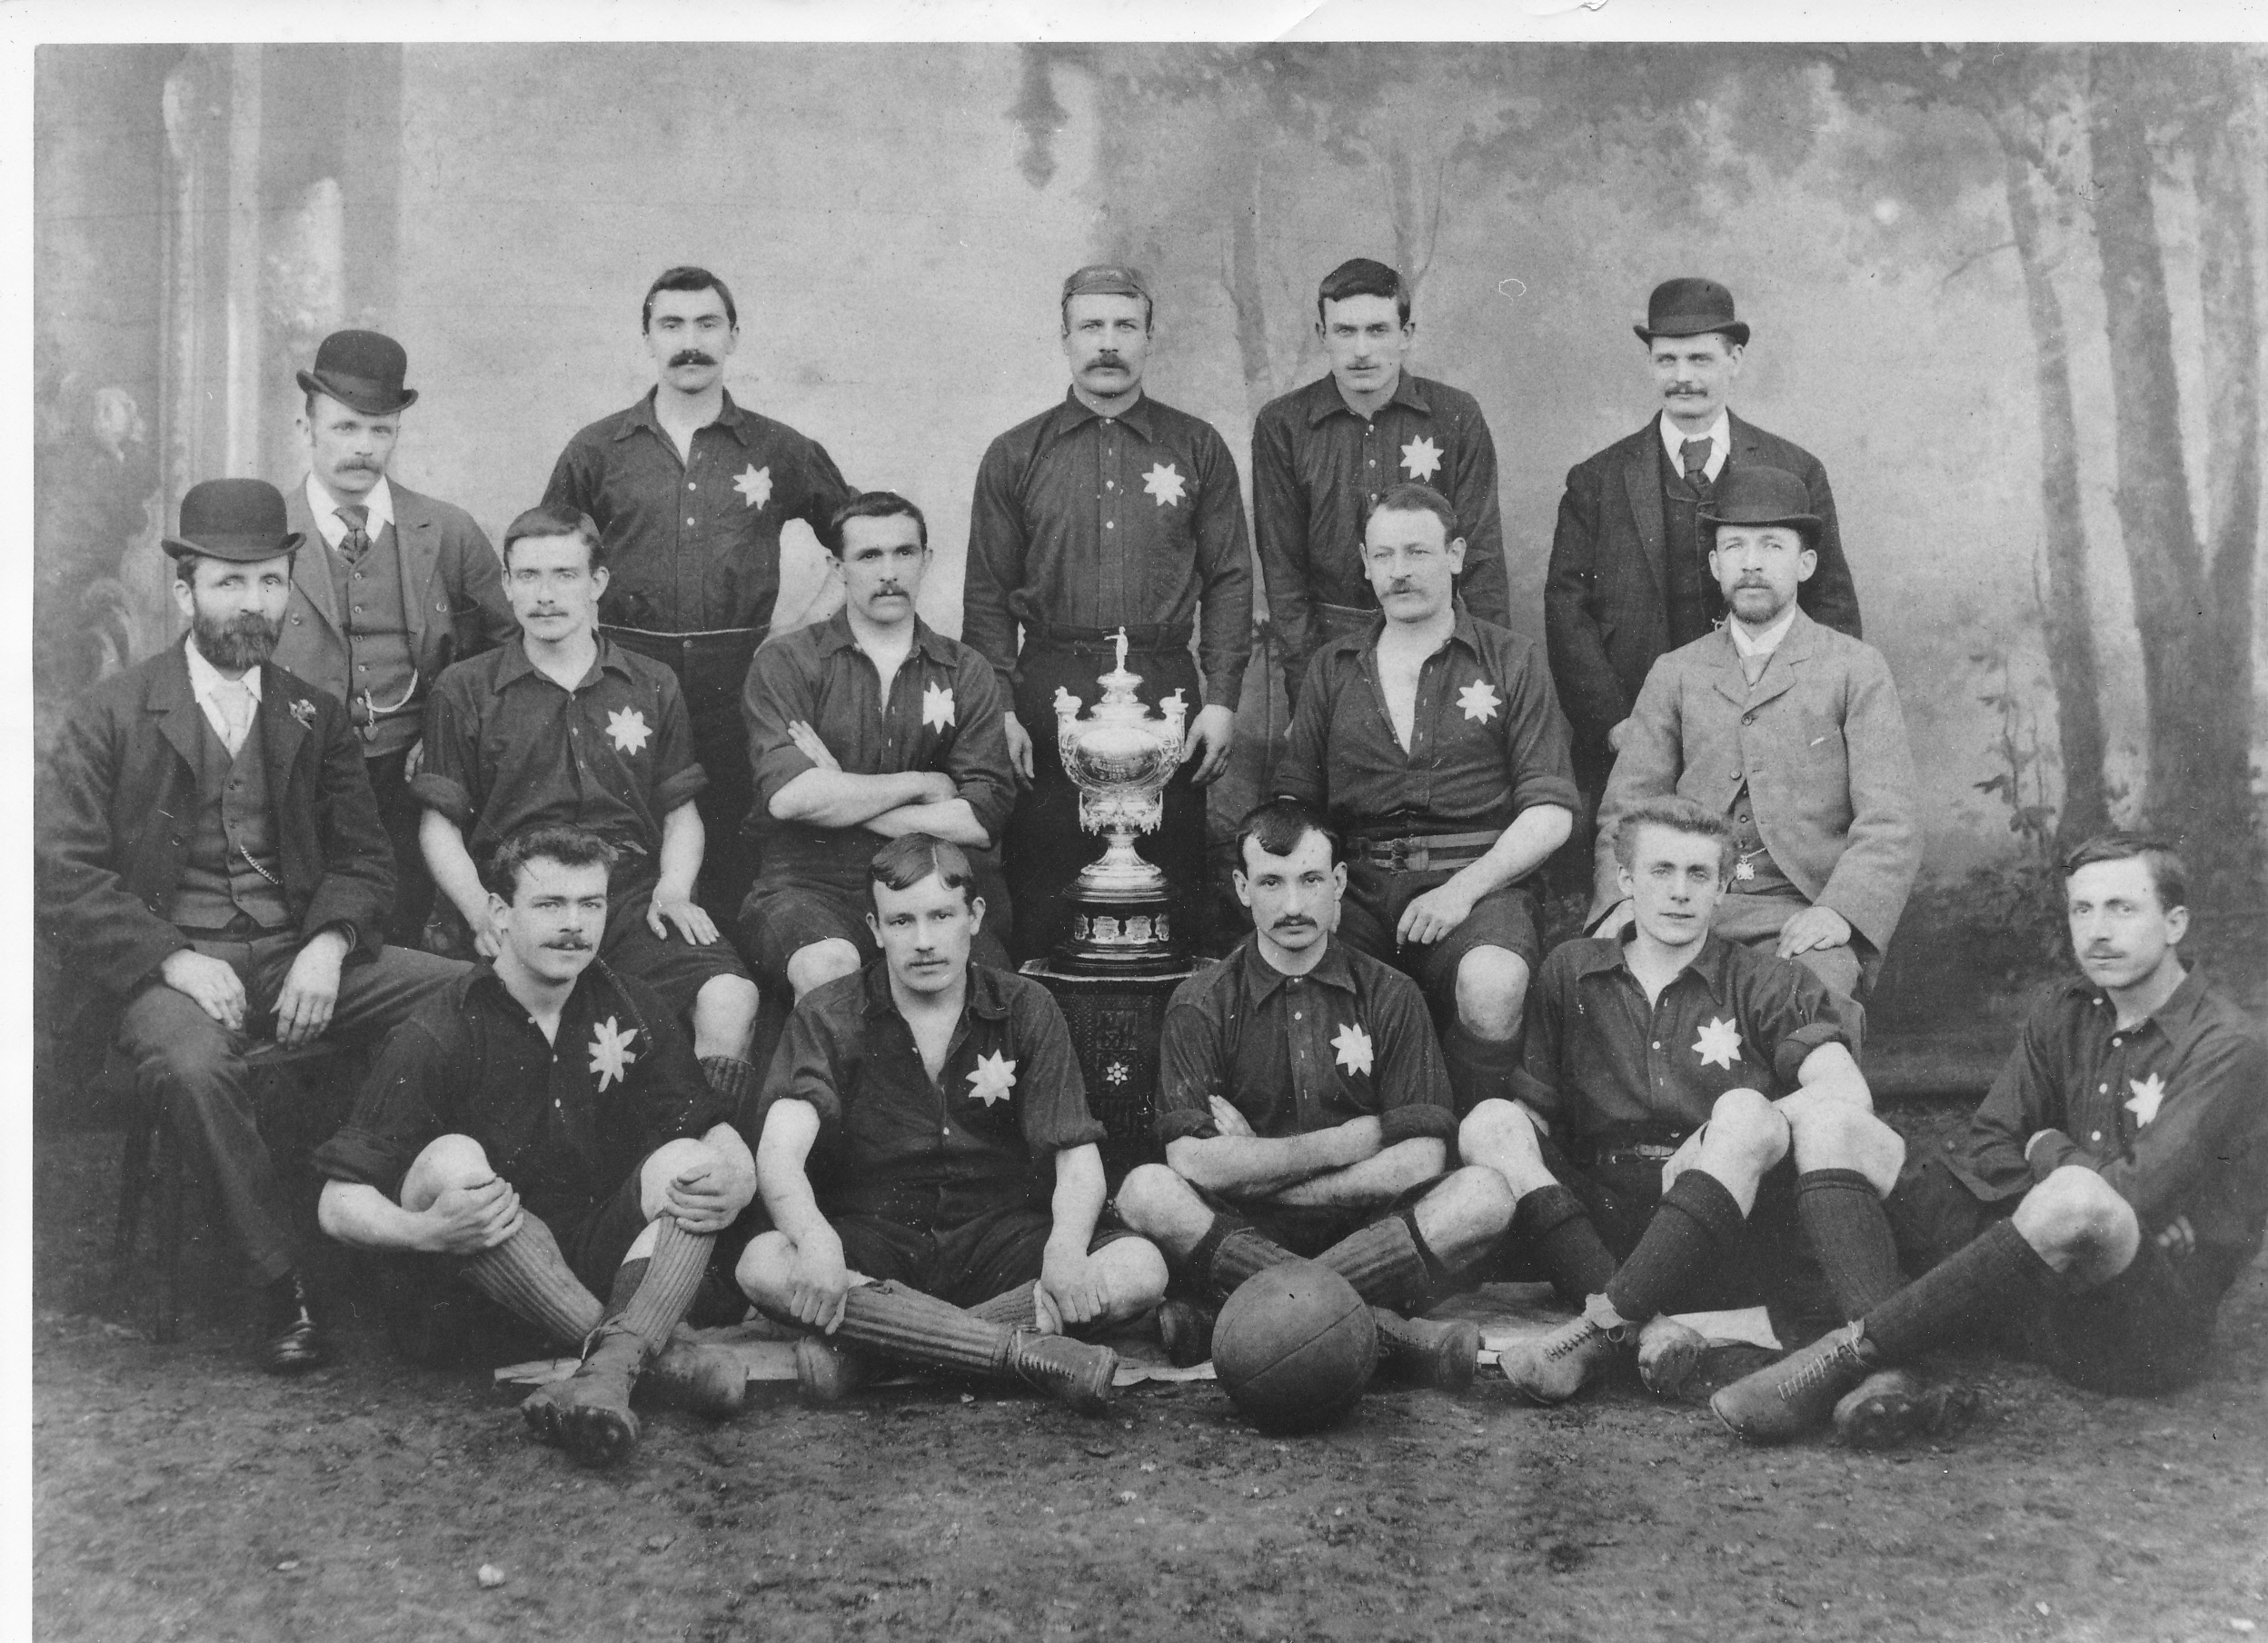 Luton Town F.C. 1894 with Luton Charity Cup